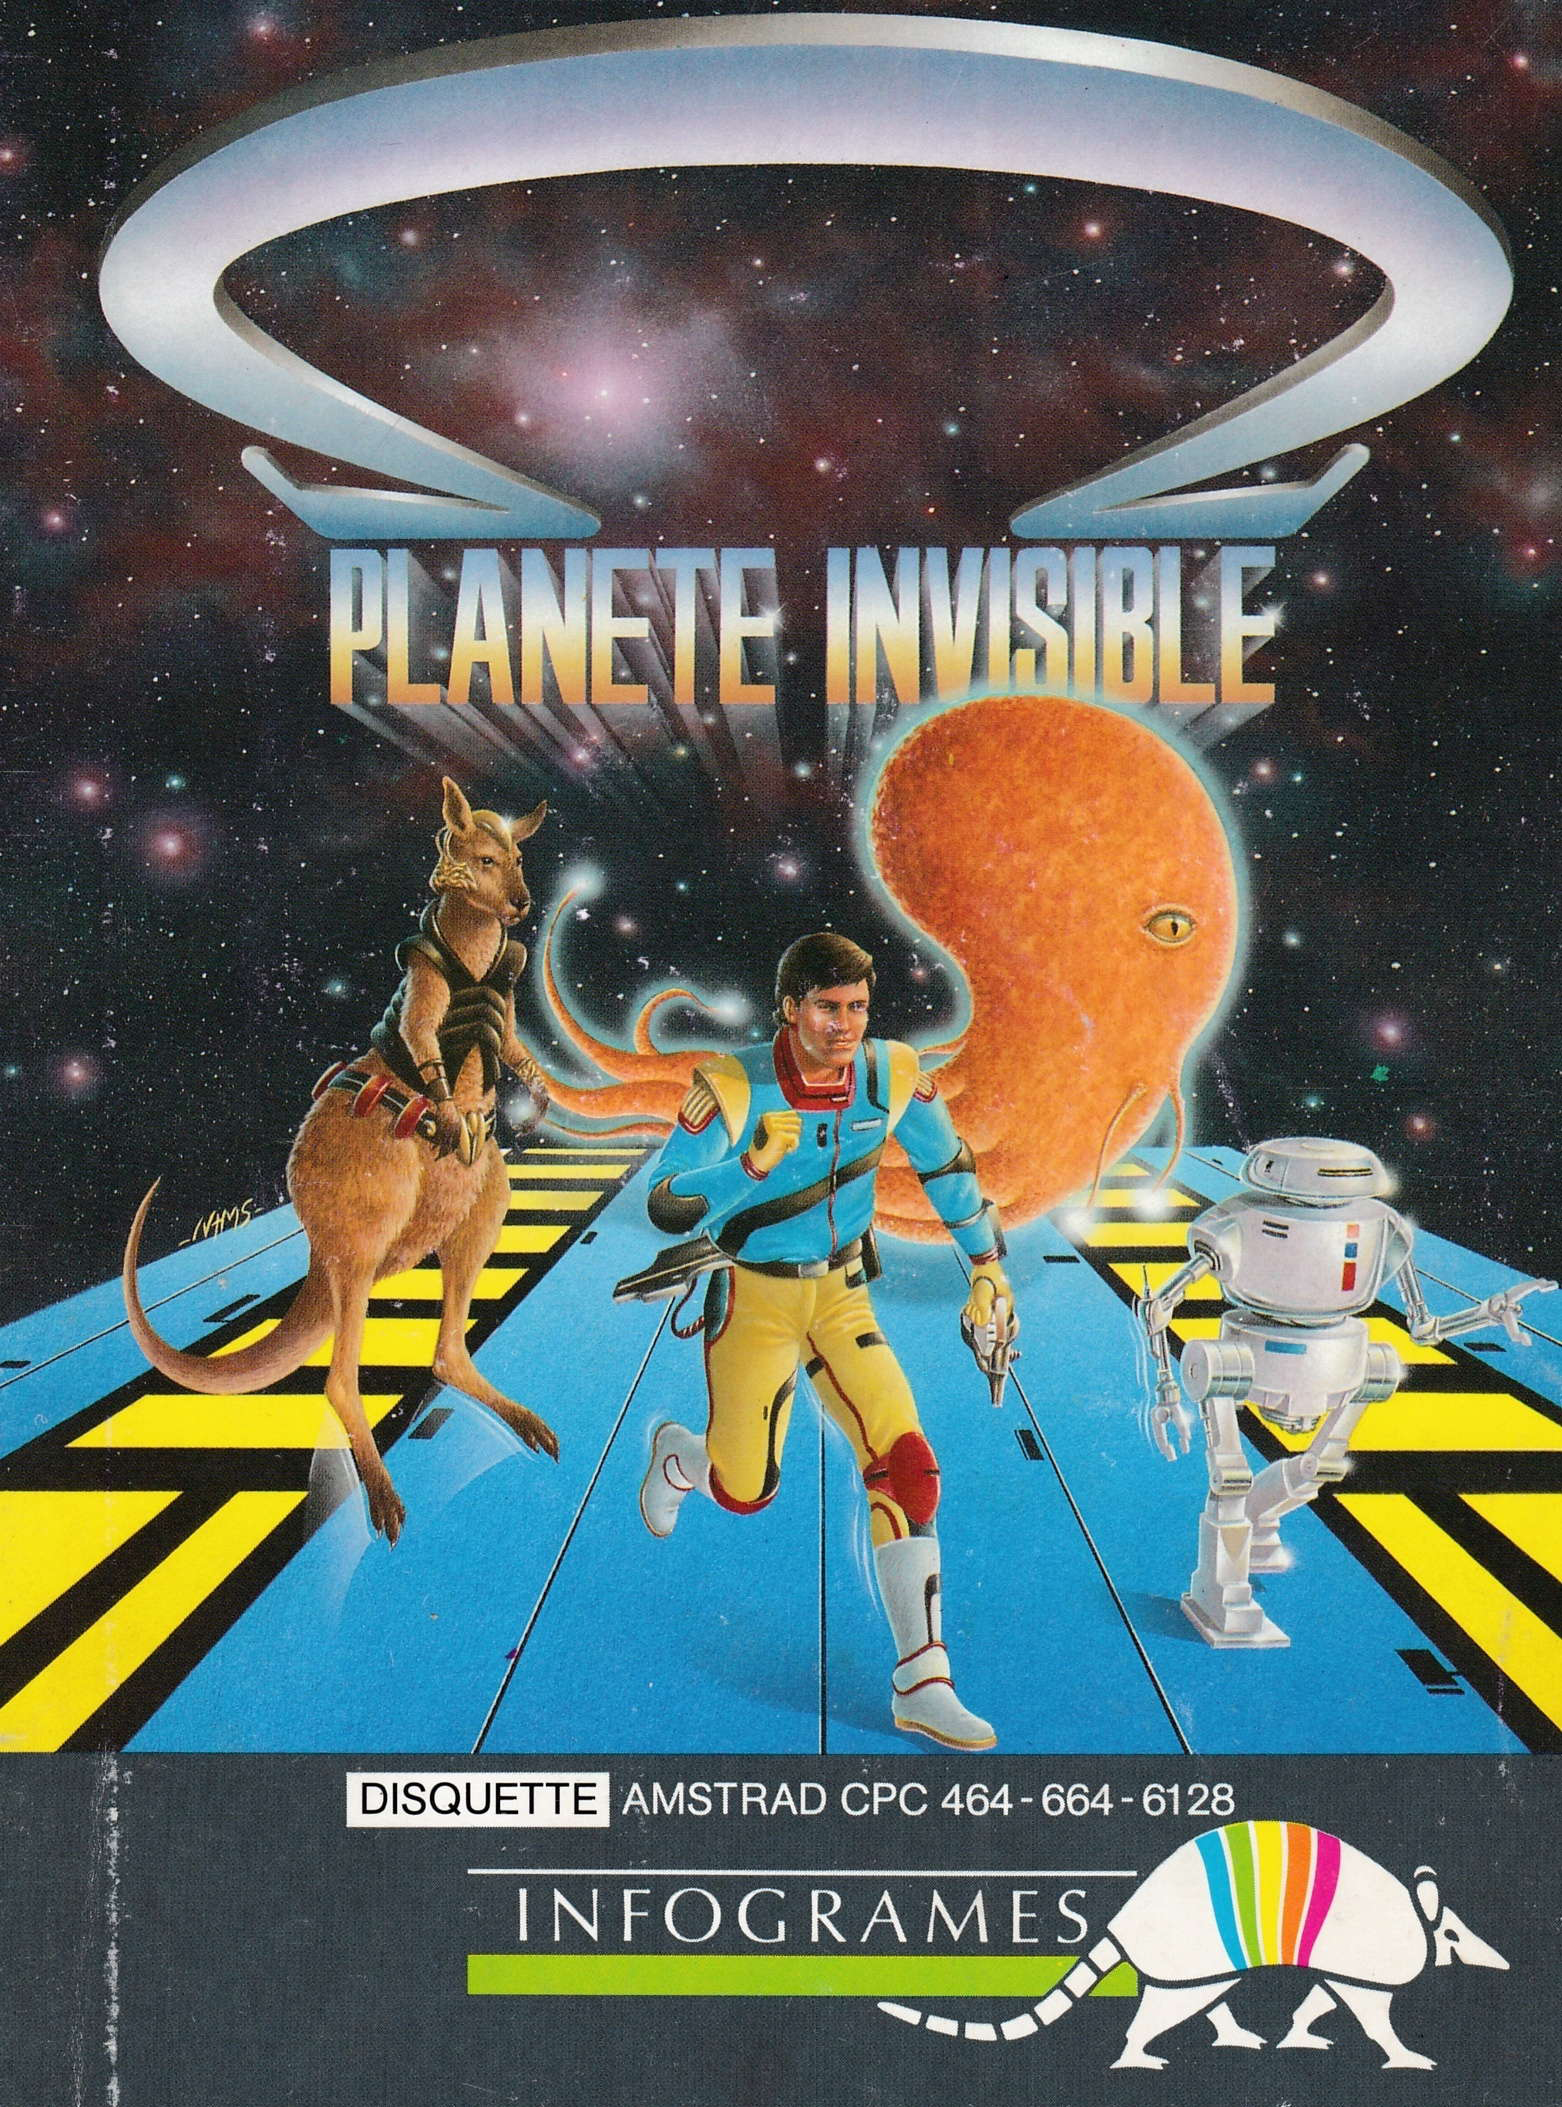 cover of the Amstrad CPC game Omega Planete Invisible  by GameBase CPC